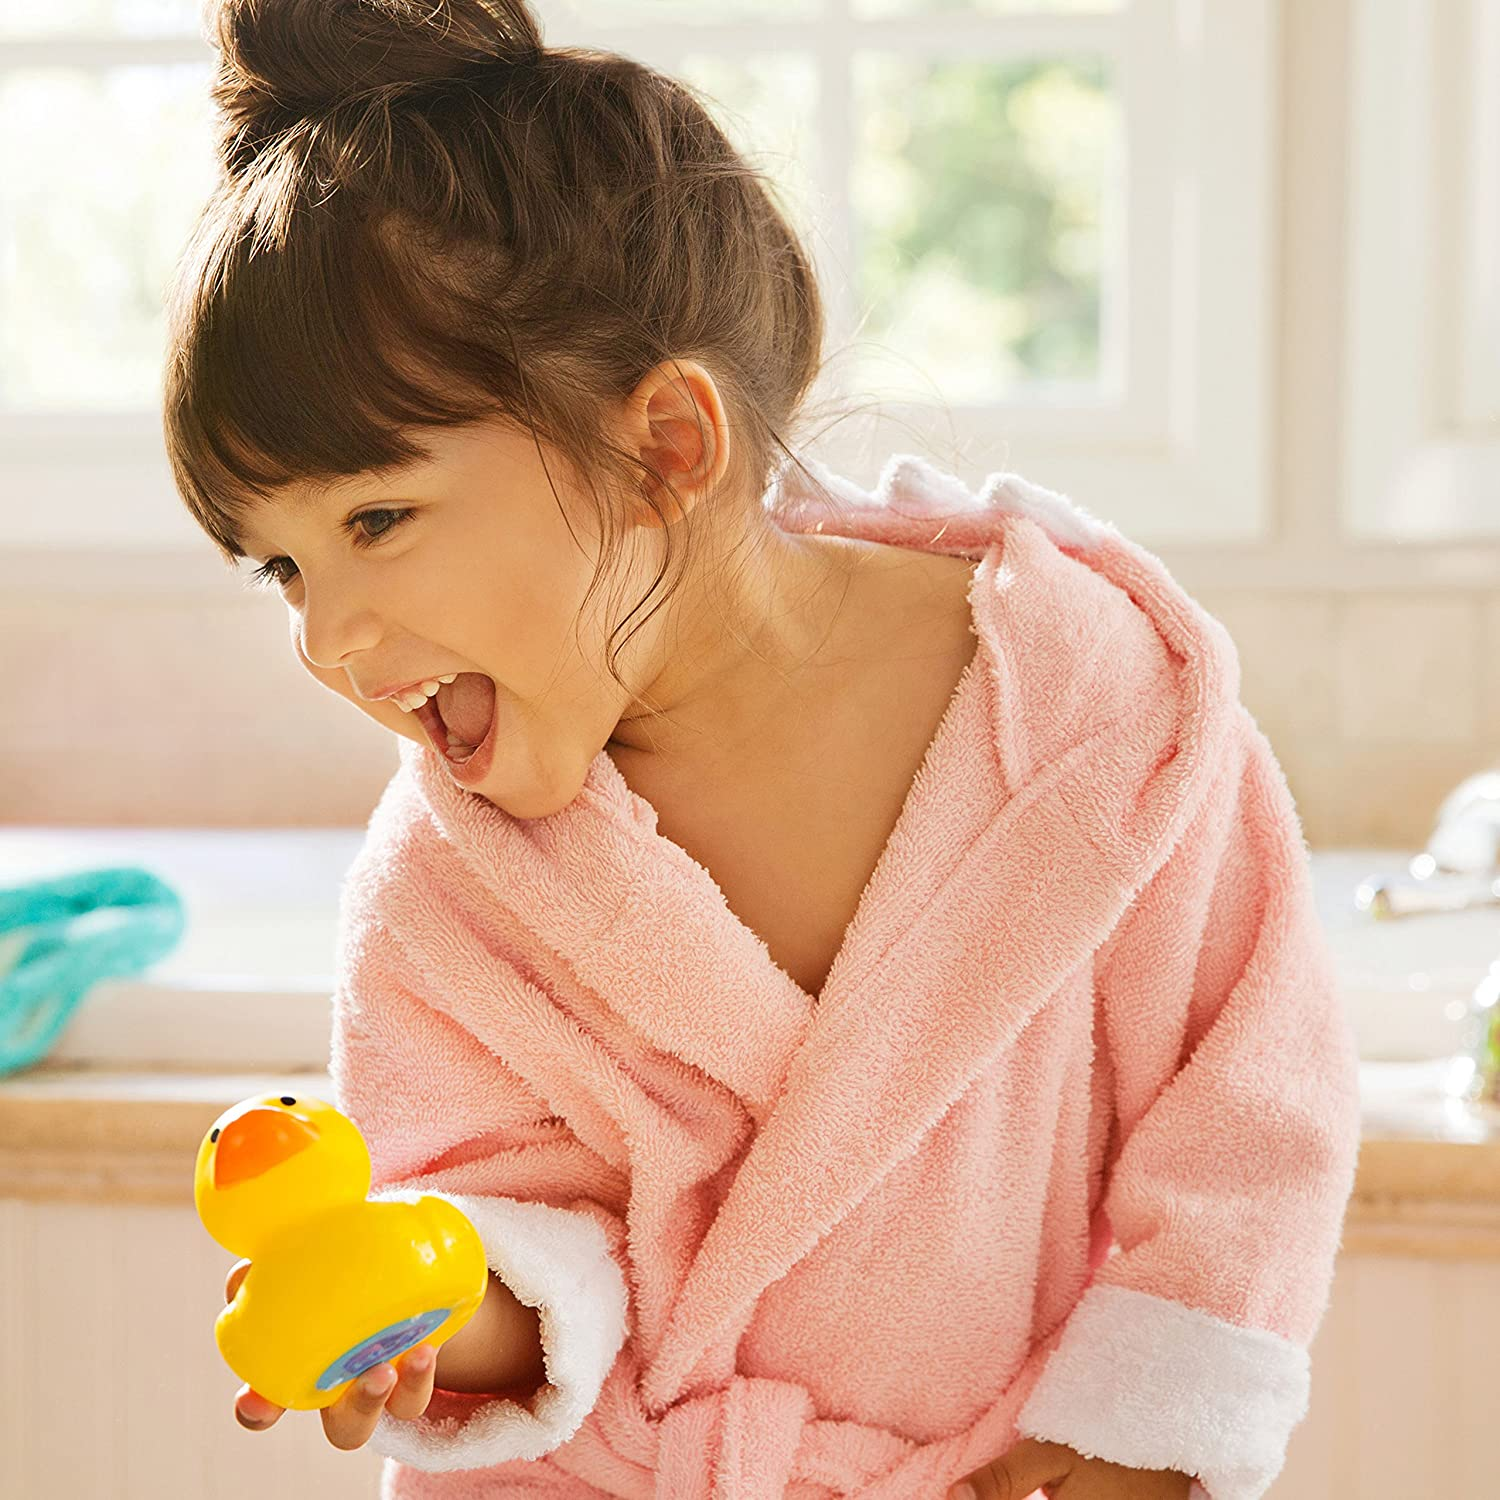 Top 10 Best Bath Toys For Toddlers (2020 Reviews) 1